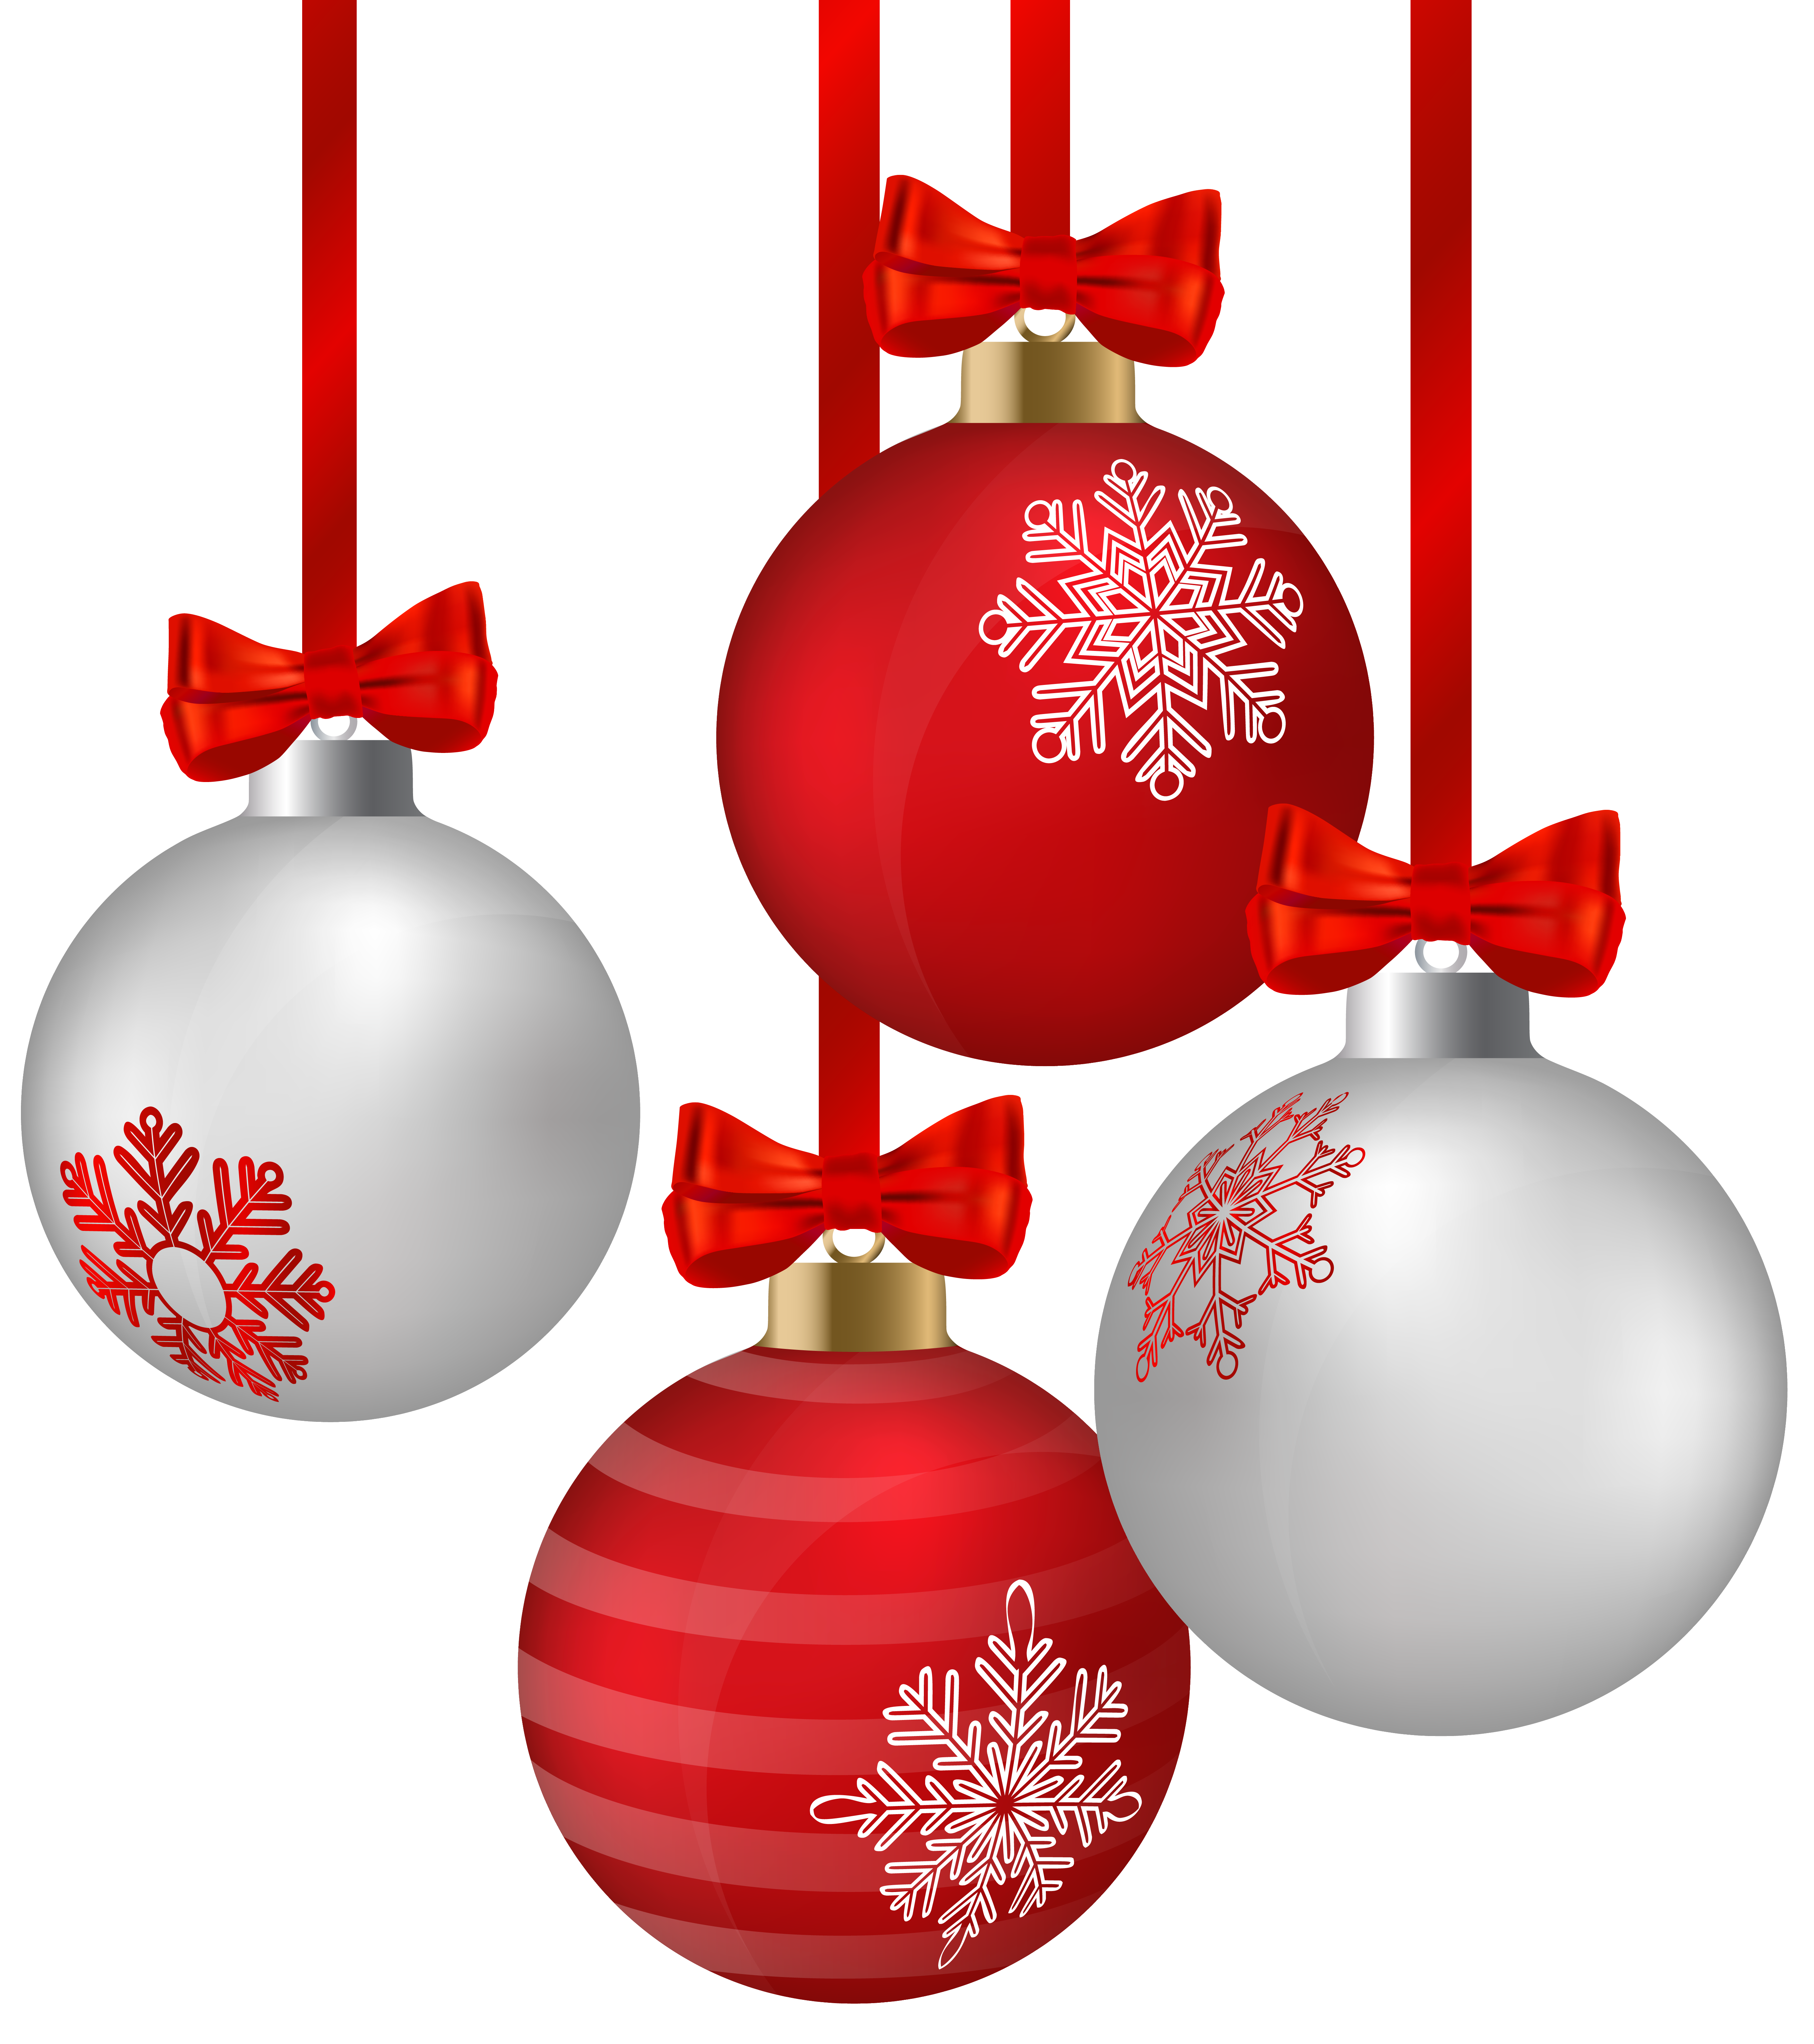 Baubles High Quality PNG